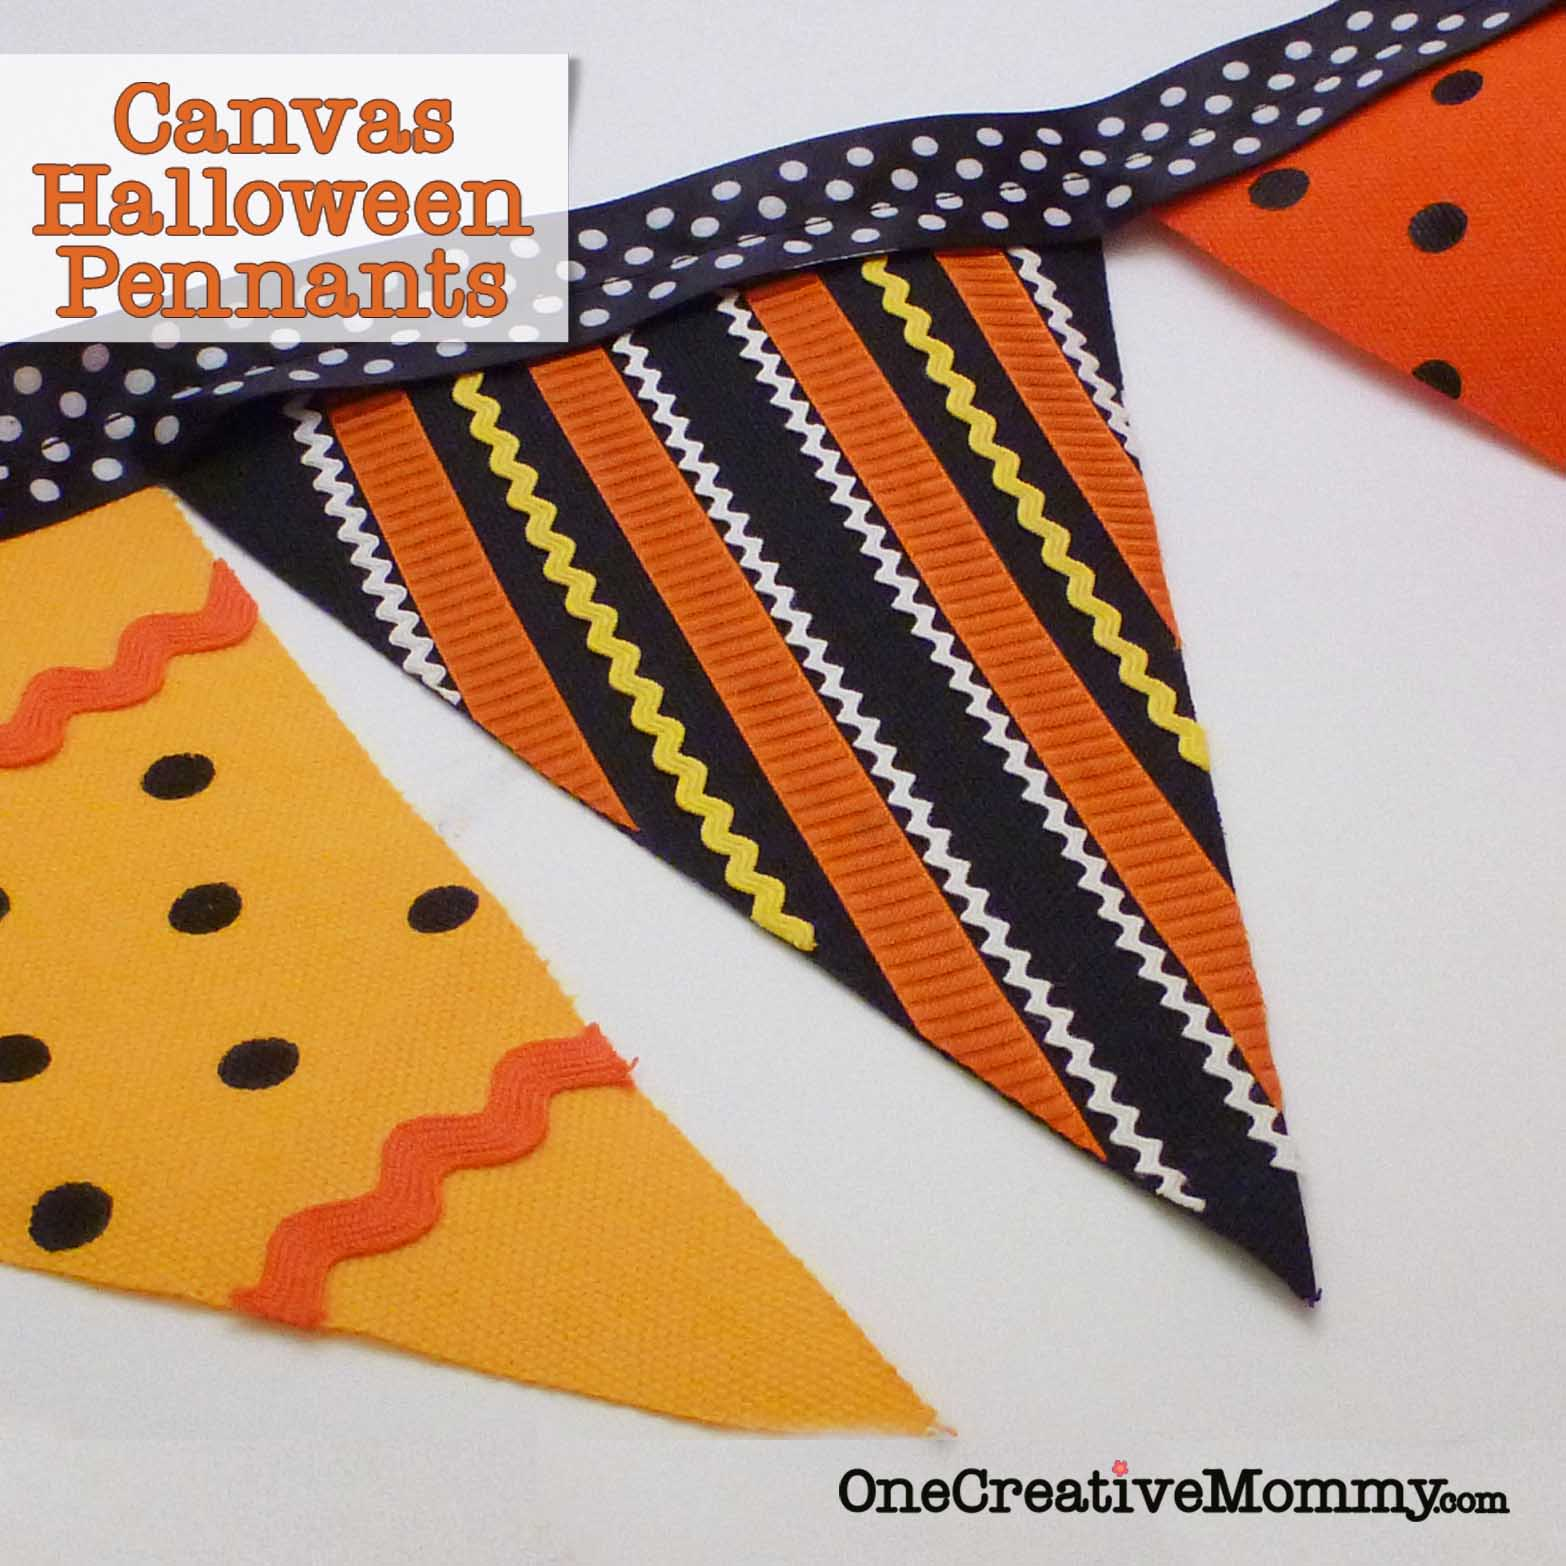 Canvas Halloween Pennants {No Sew}: 10 Fun and Spooky DIY Halloween Decorations | Cheap Is The New Classy